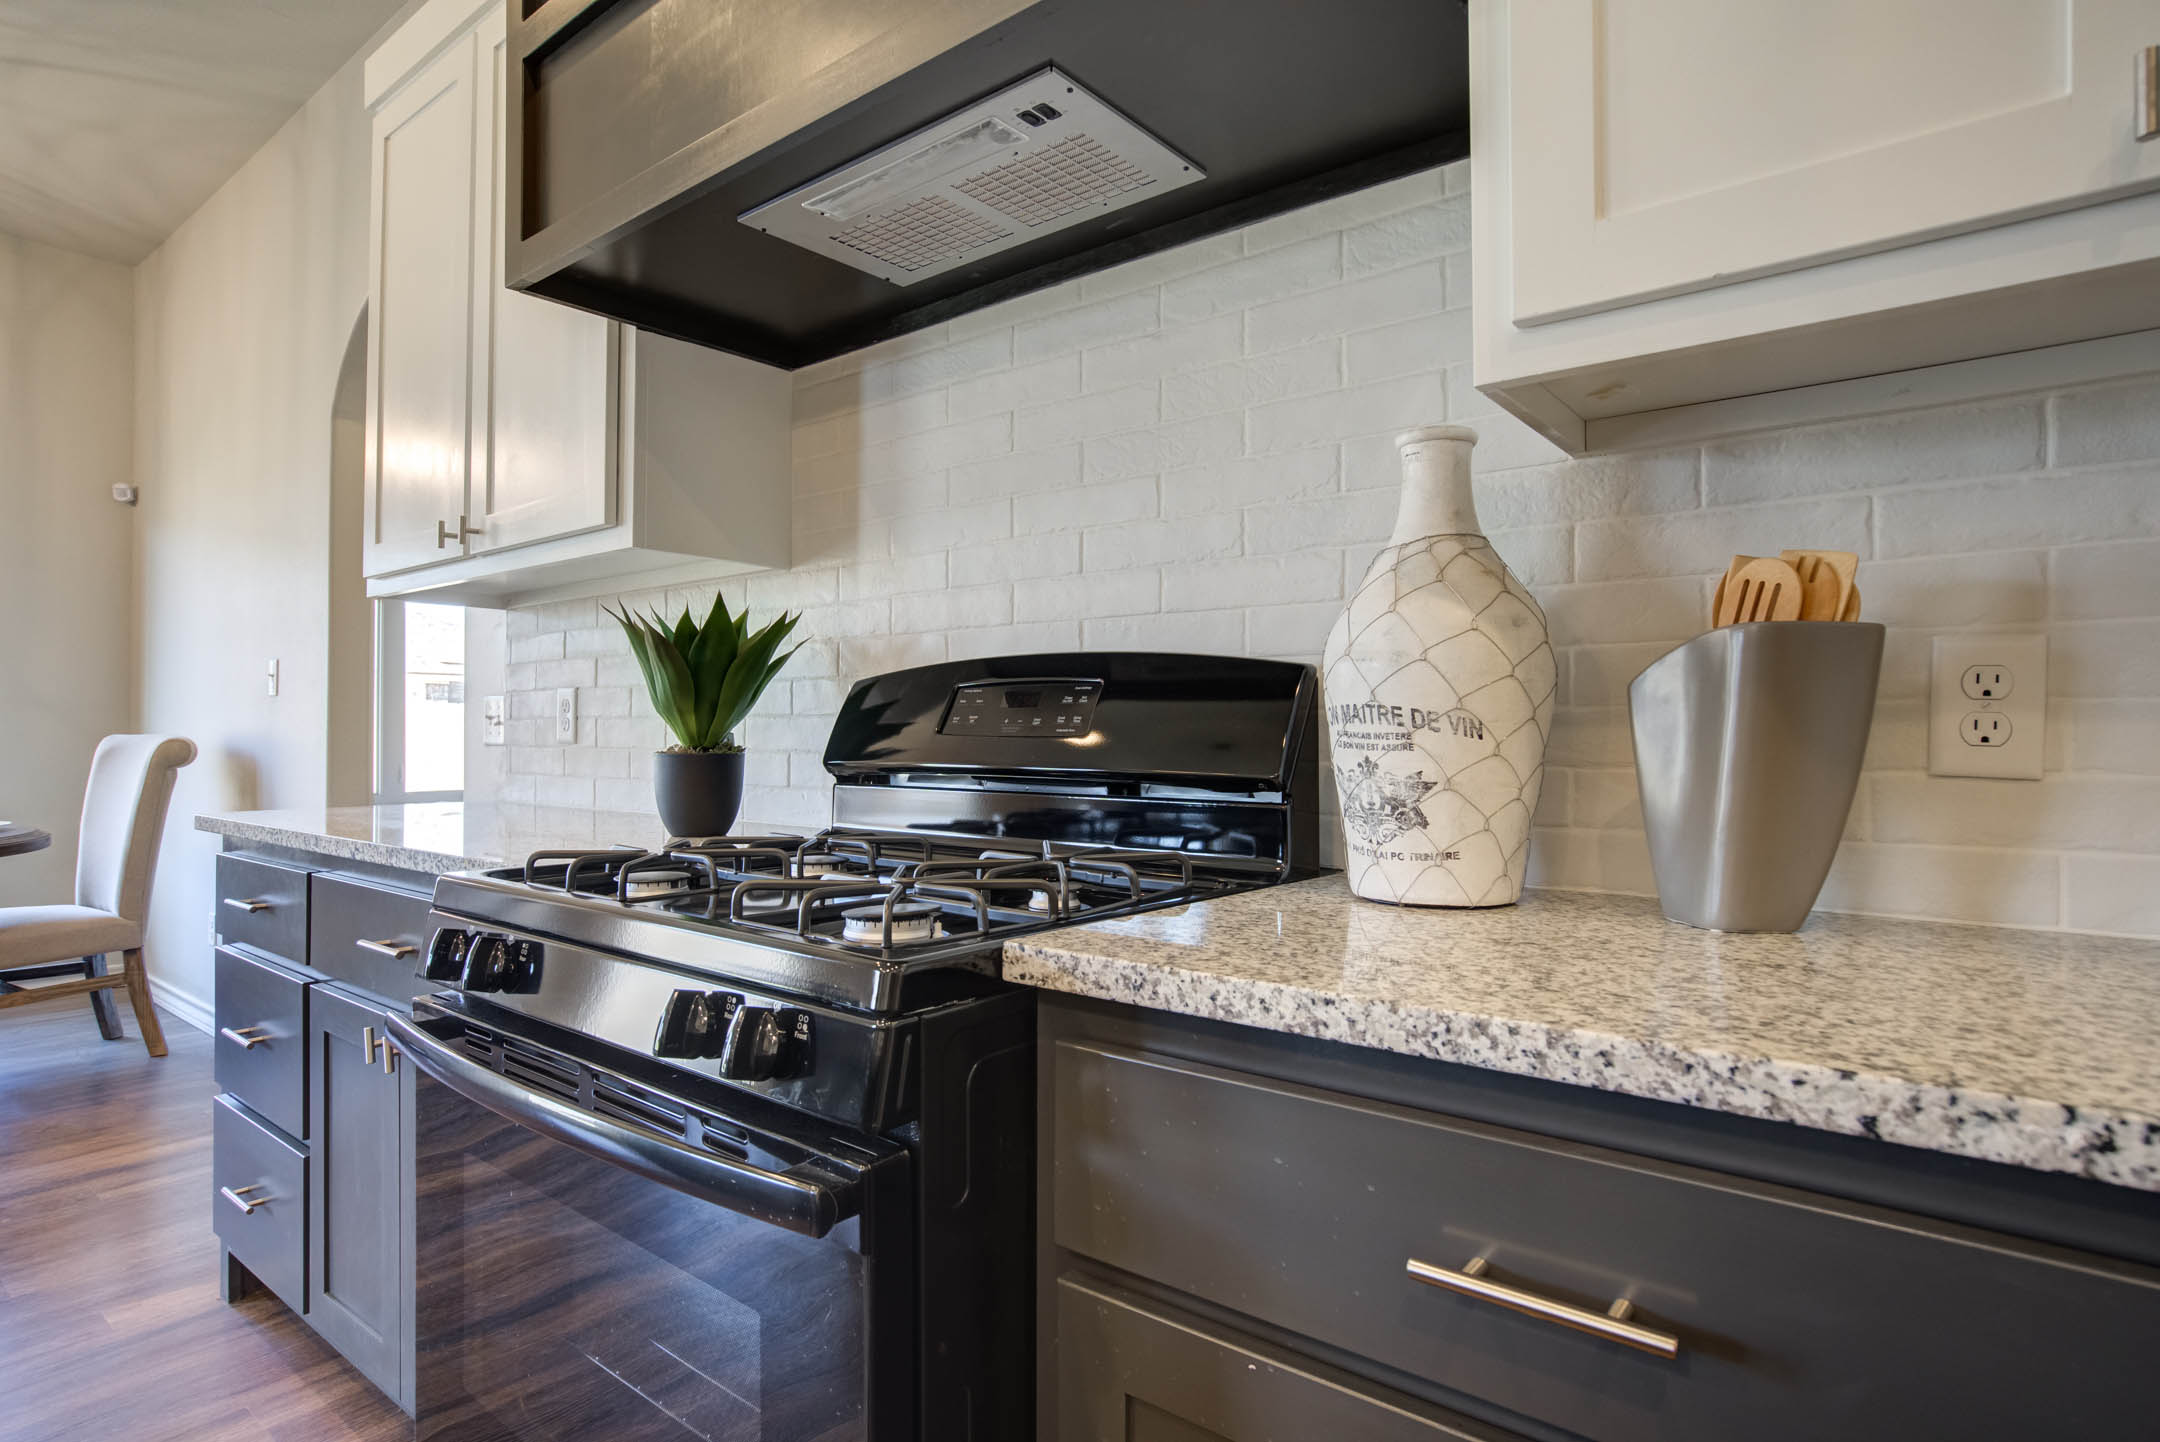 Stove area with beautiful tile treatment in kitchen of home for sale in Lubbock.